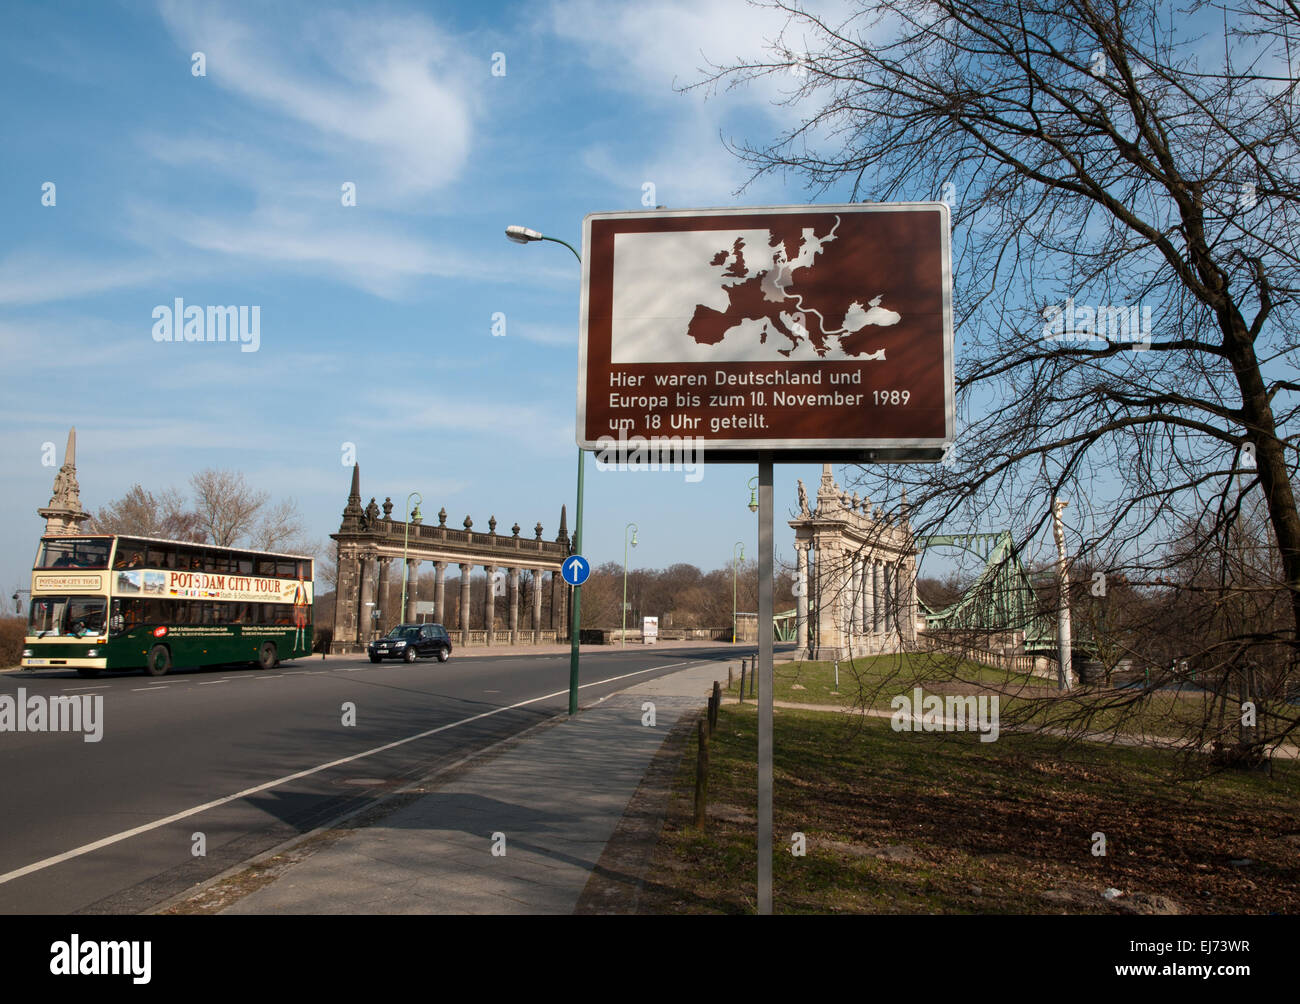 Glienicker Bruecke bridge, scene of Cold War spy exchanges - Stock Image